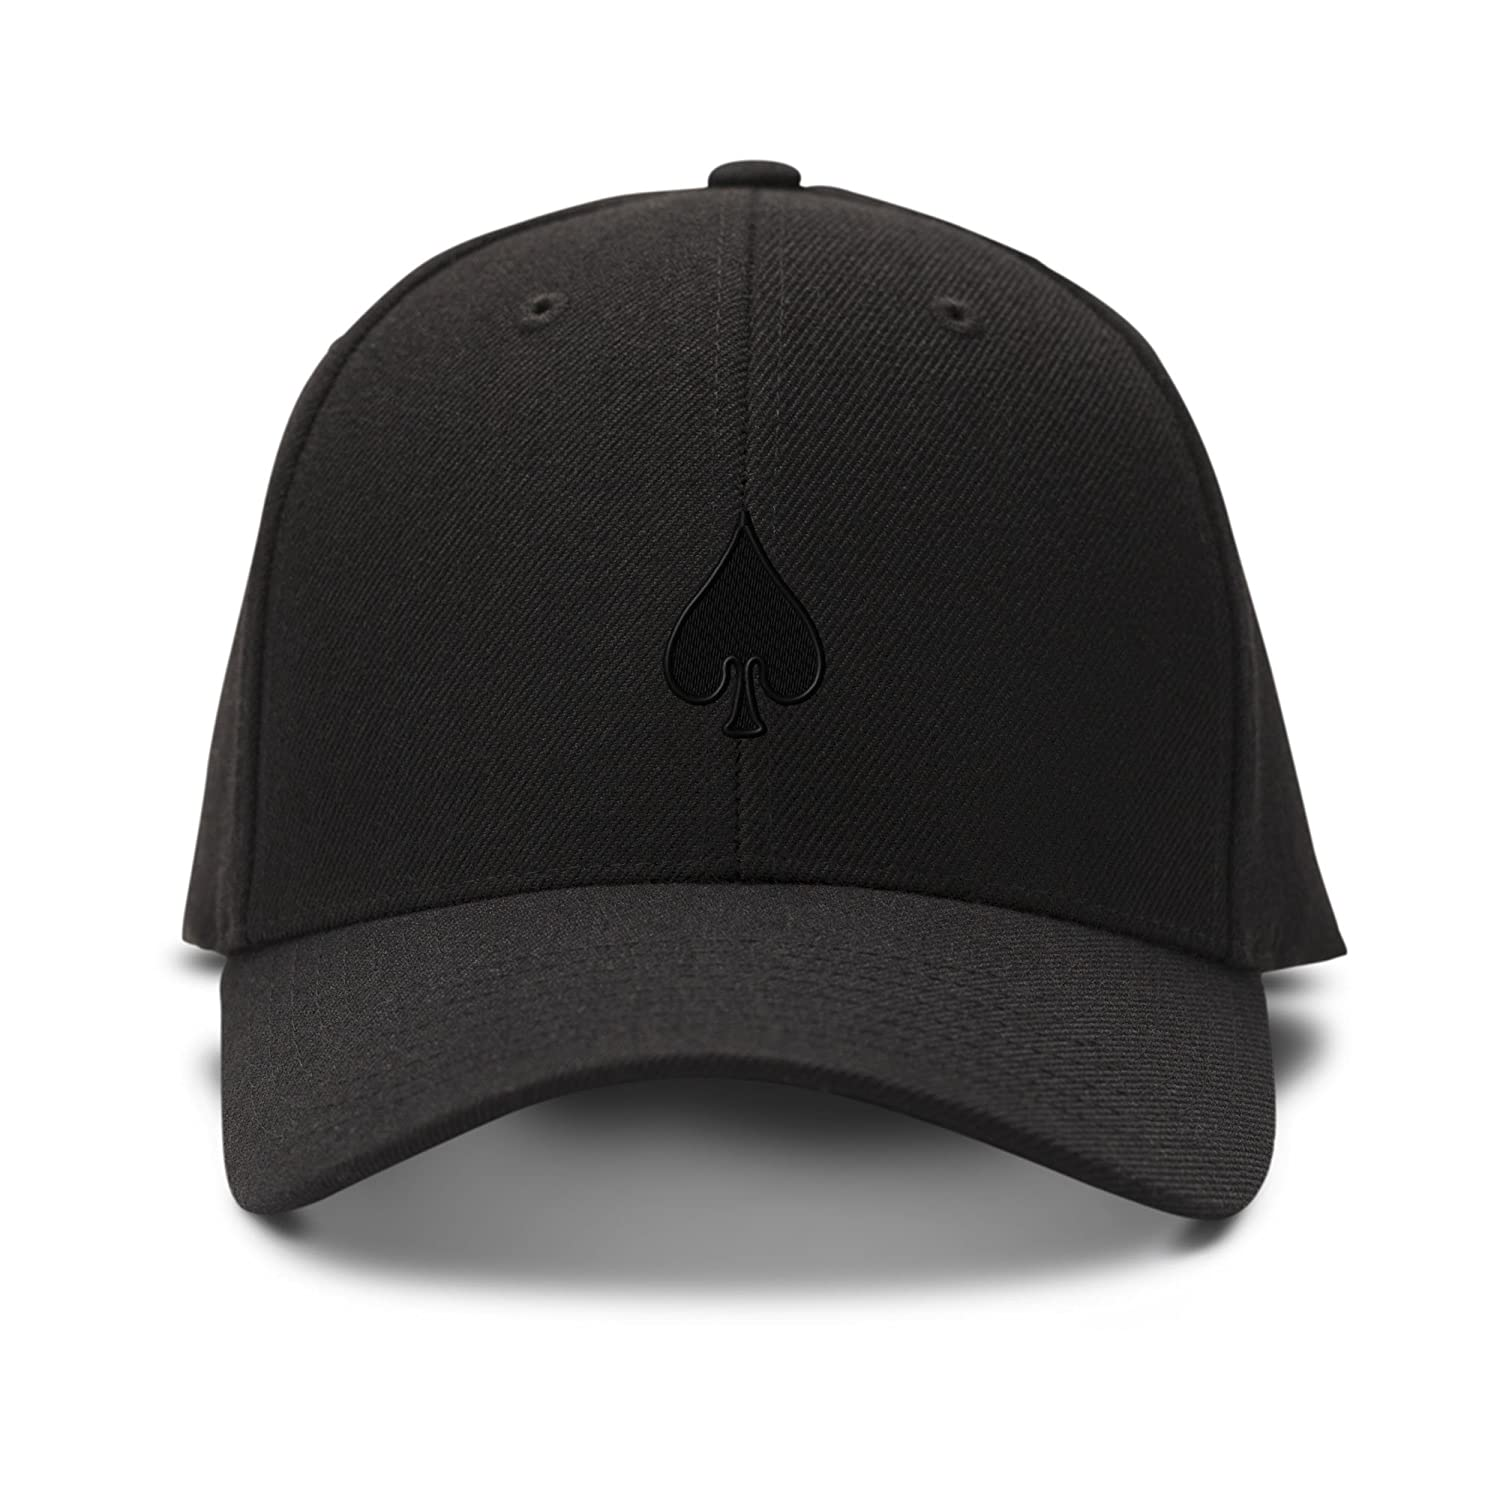 Amazon.com  Spade Poker Card Playing Embroidery Adjustable Structured  Baseball Hat Black  Clothing 81001724641